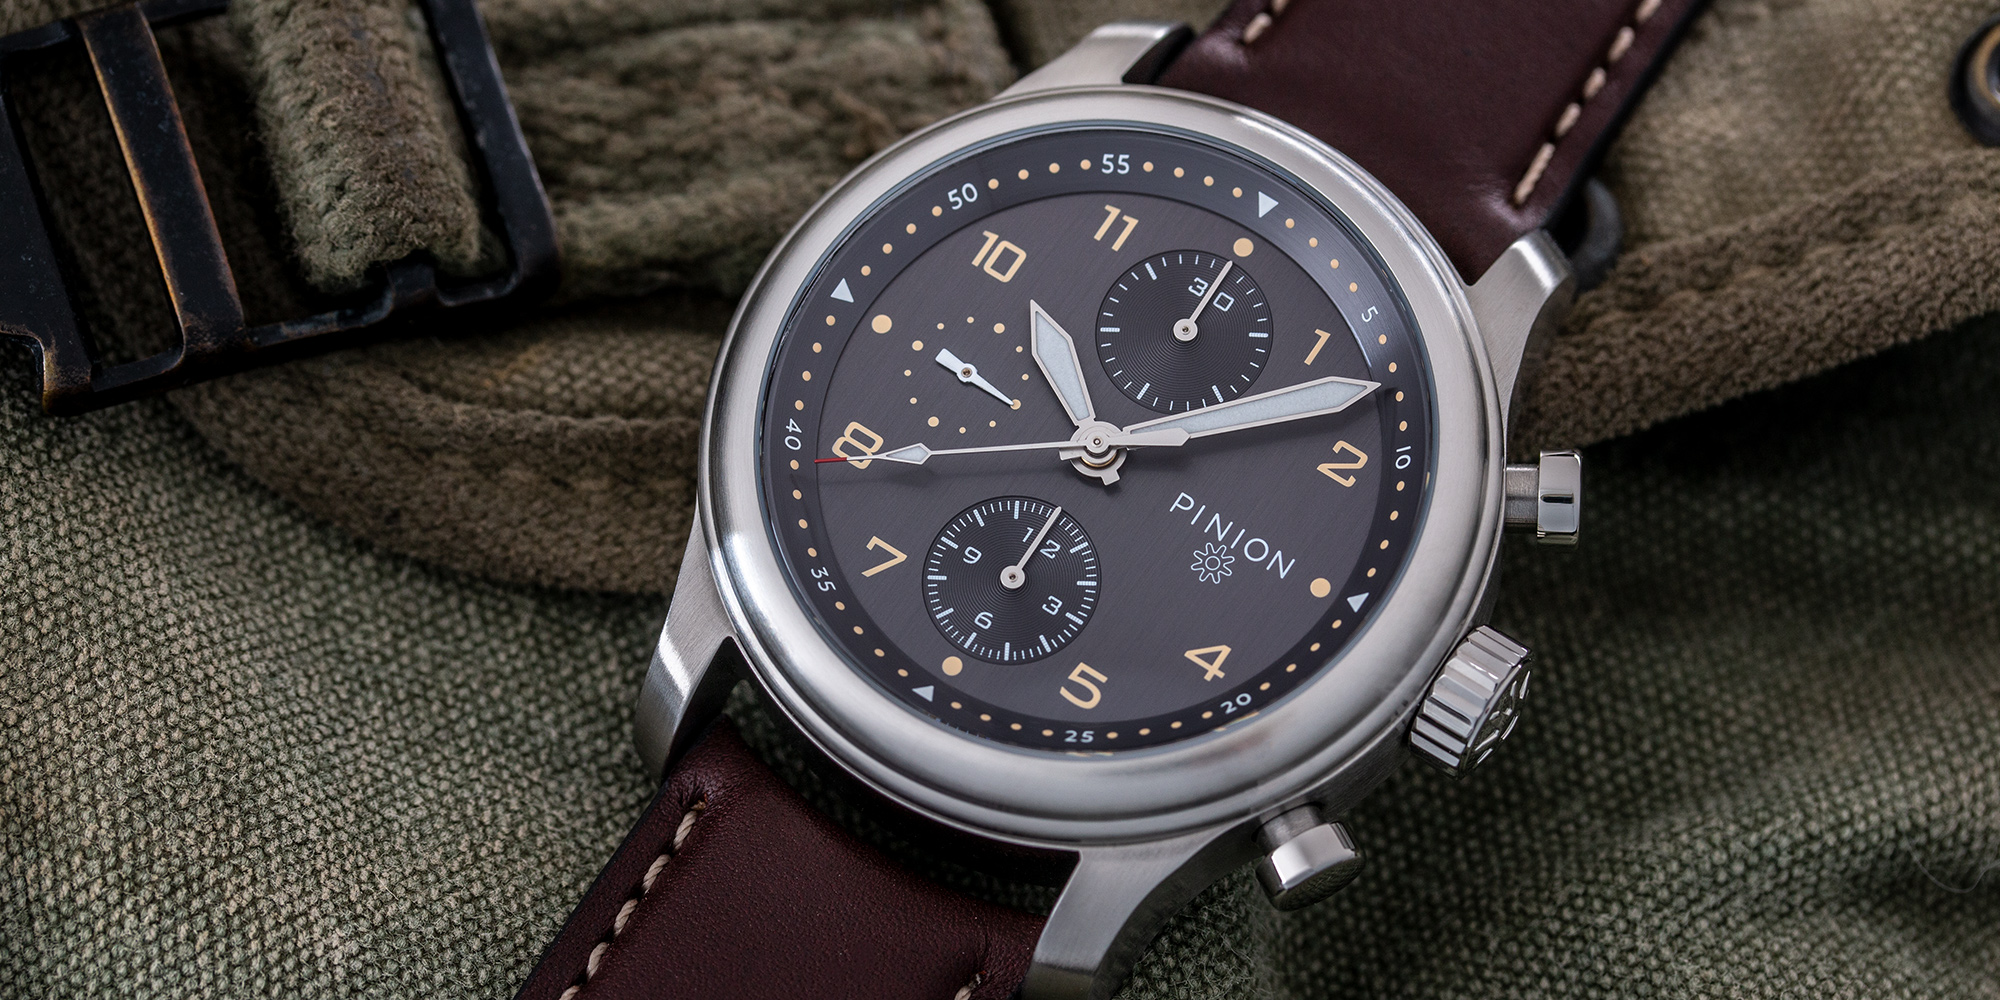 pinion-elapse-chronograph-anthracite-dial-watch-009